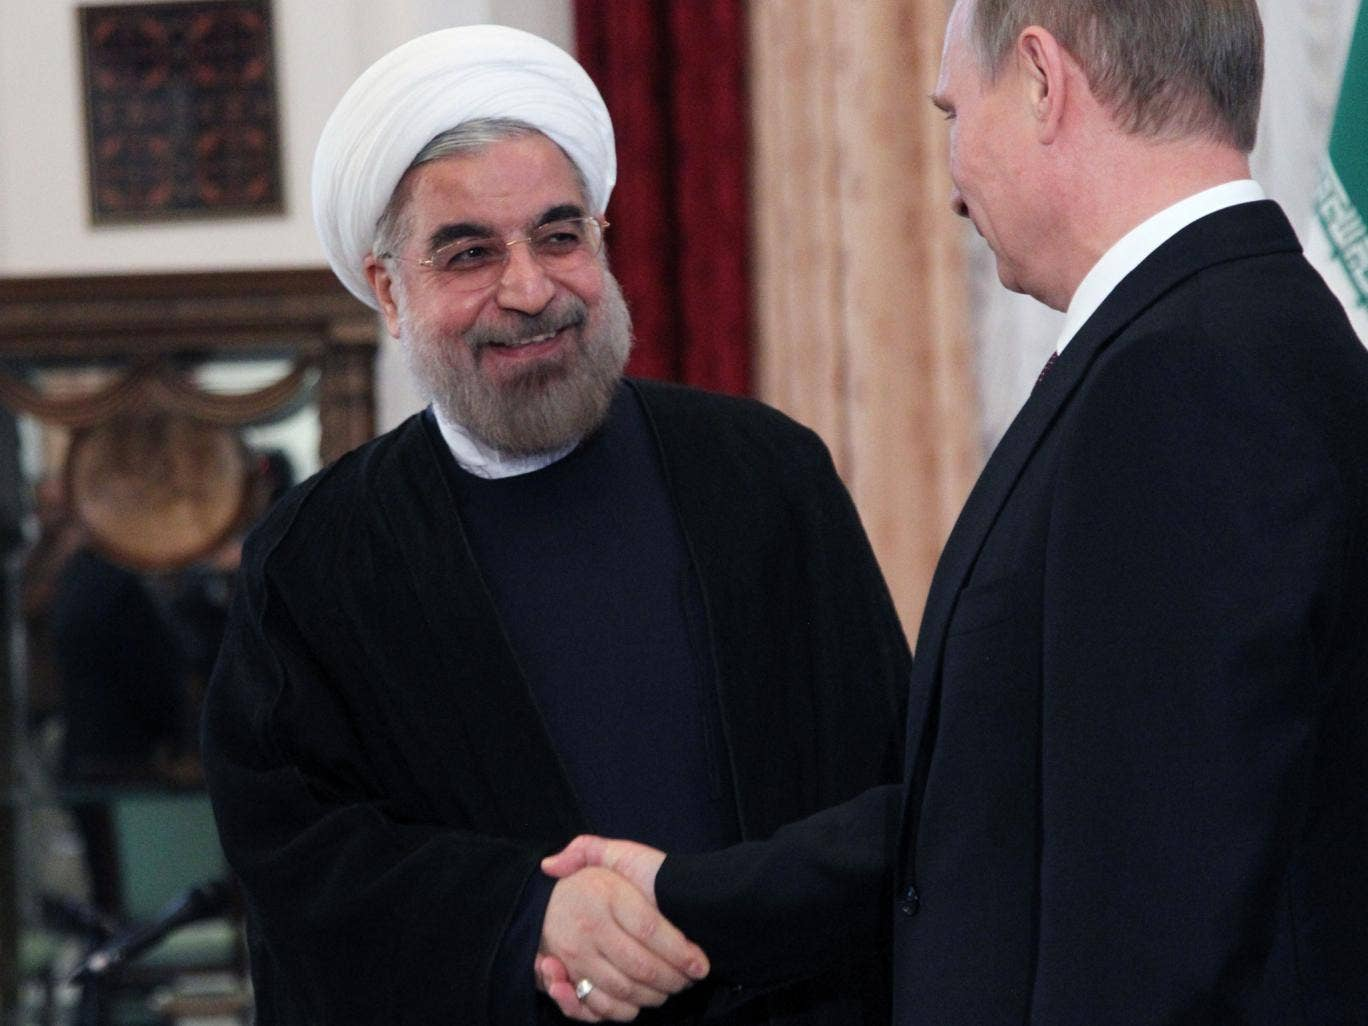 Firm friends: Mollifying words from Presidents Hassan Rouhani, and Vladimir Putin have not changed matters in Syria